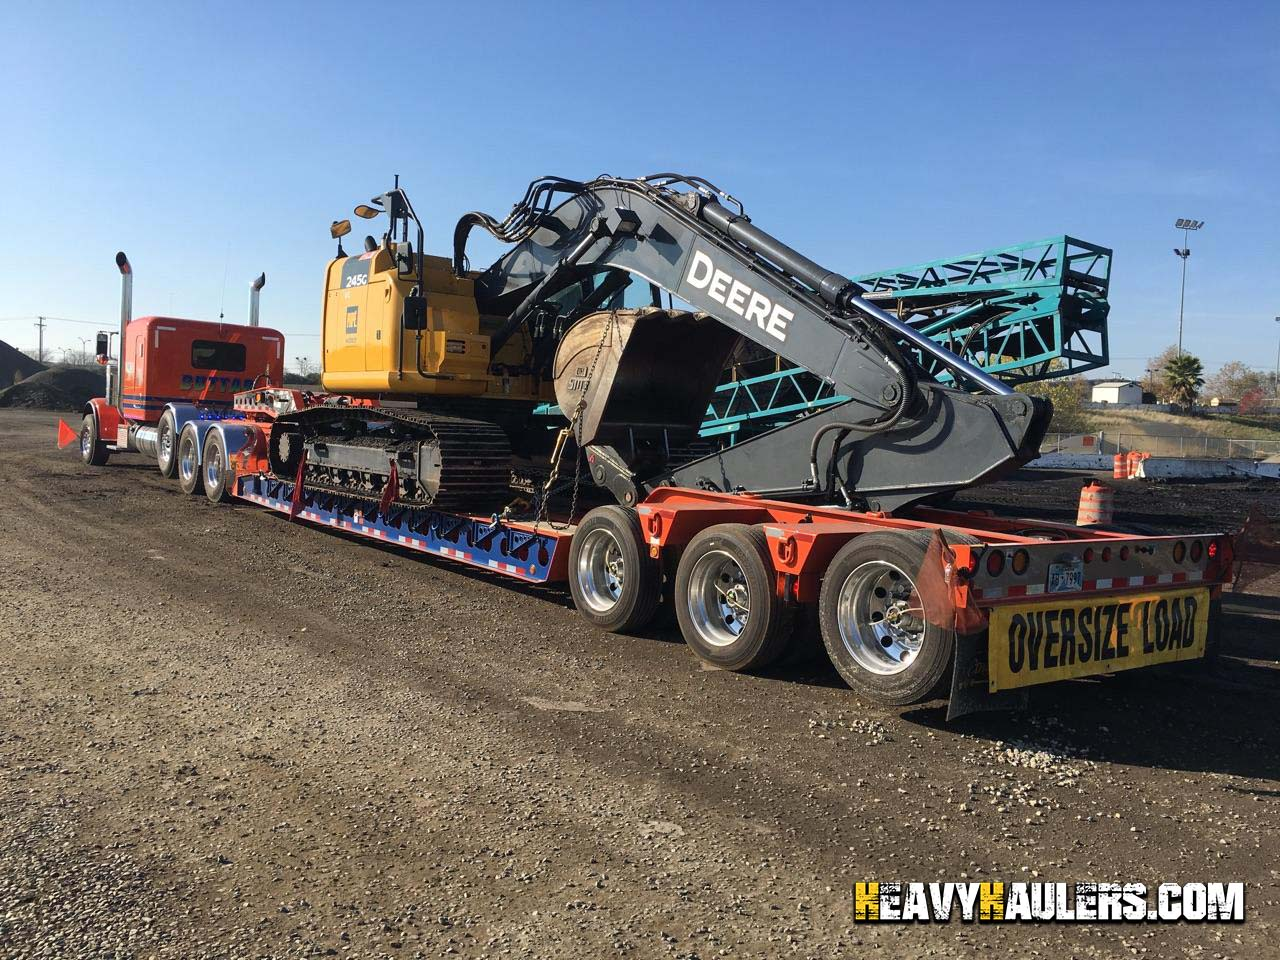 Excavator Shipping Services Heavy Haulers 800 908 6206